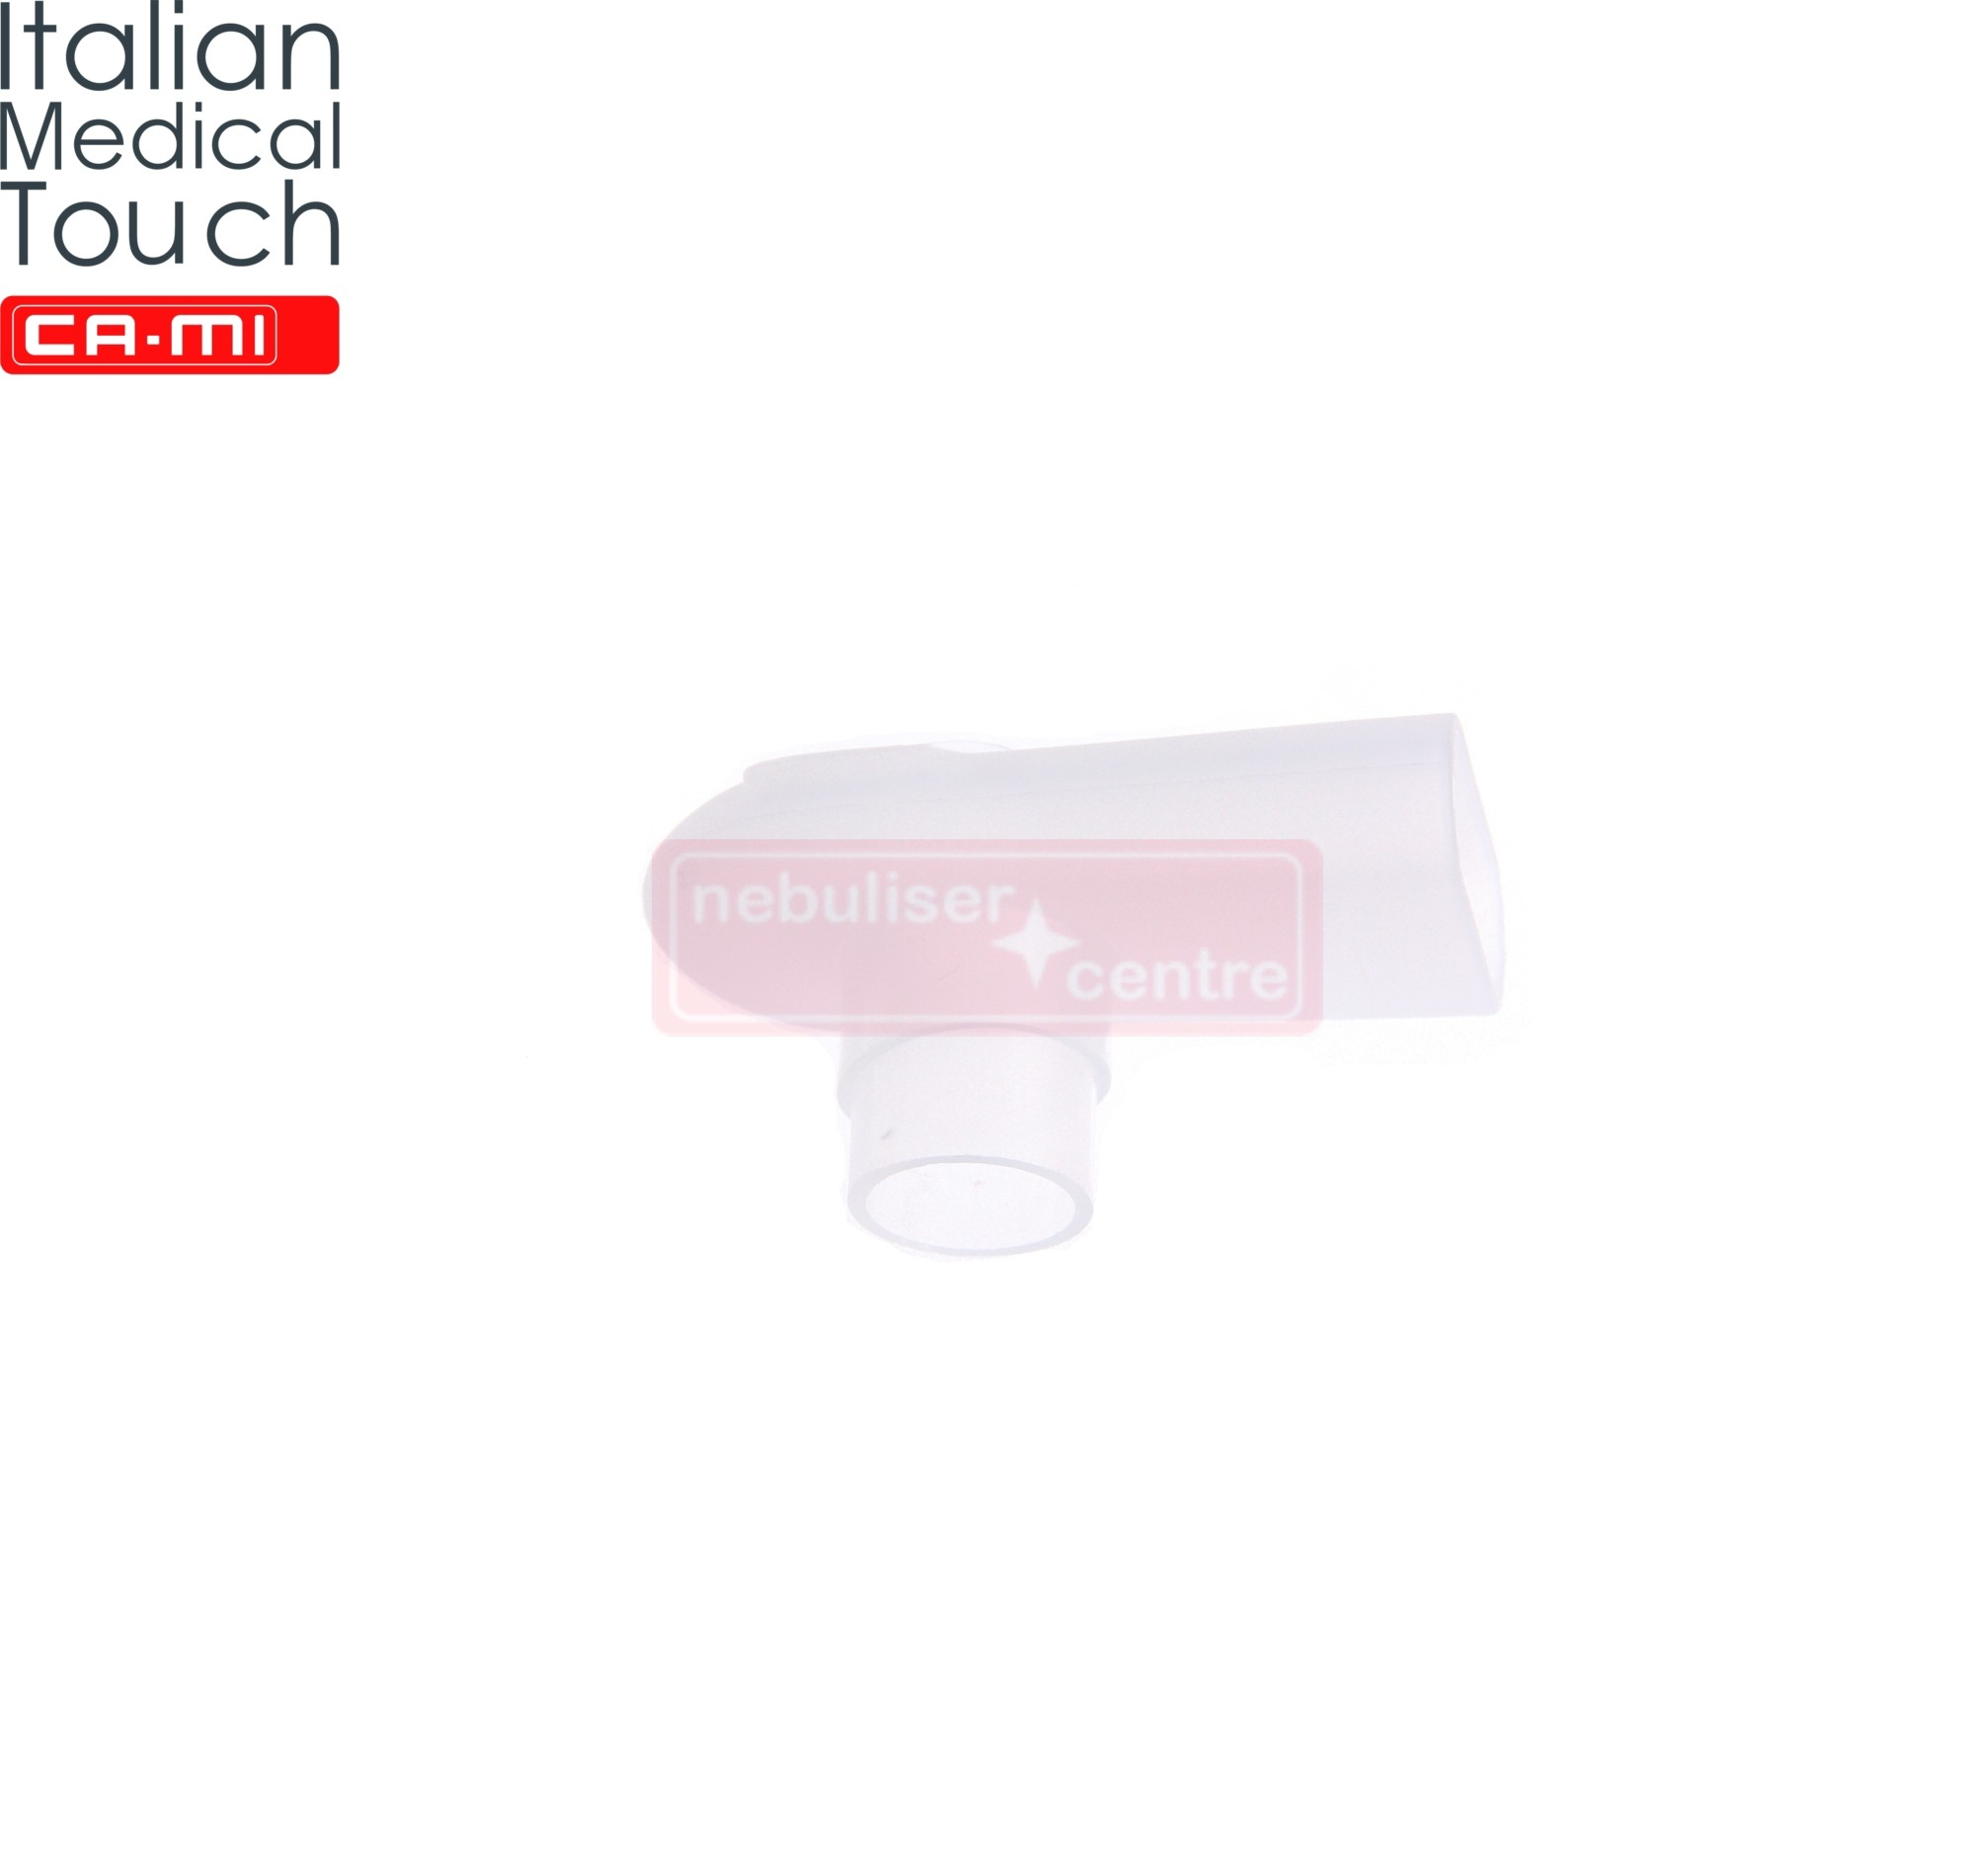 Nebuliser Mouthpiece for CA-MI HiFlo nebulisers